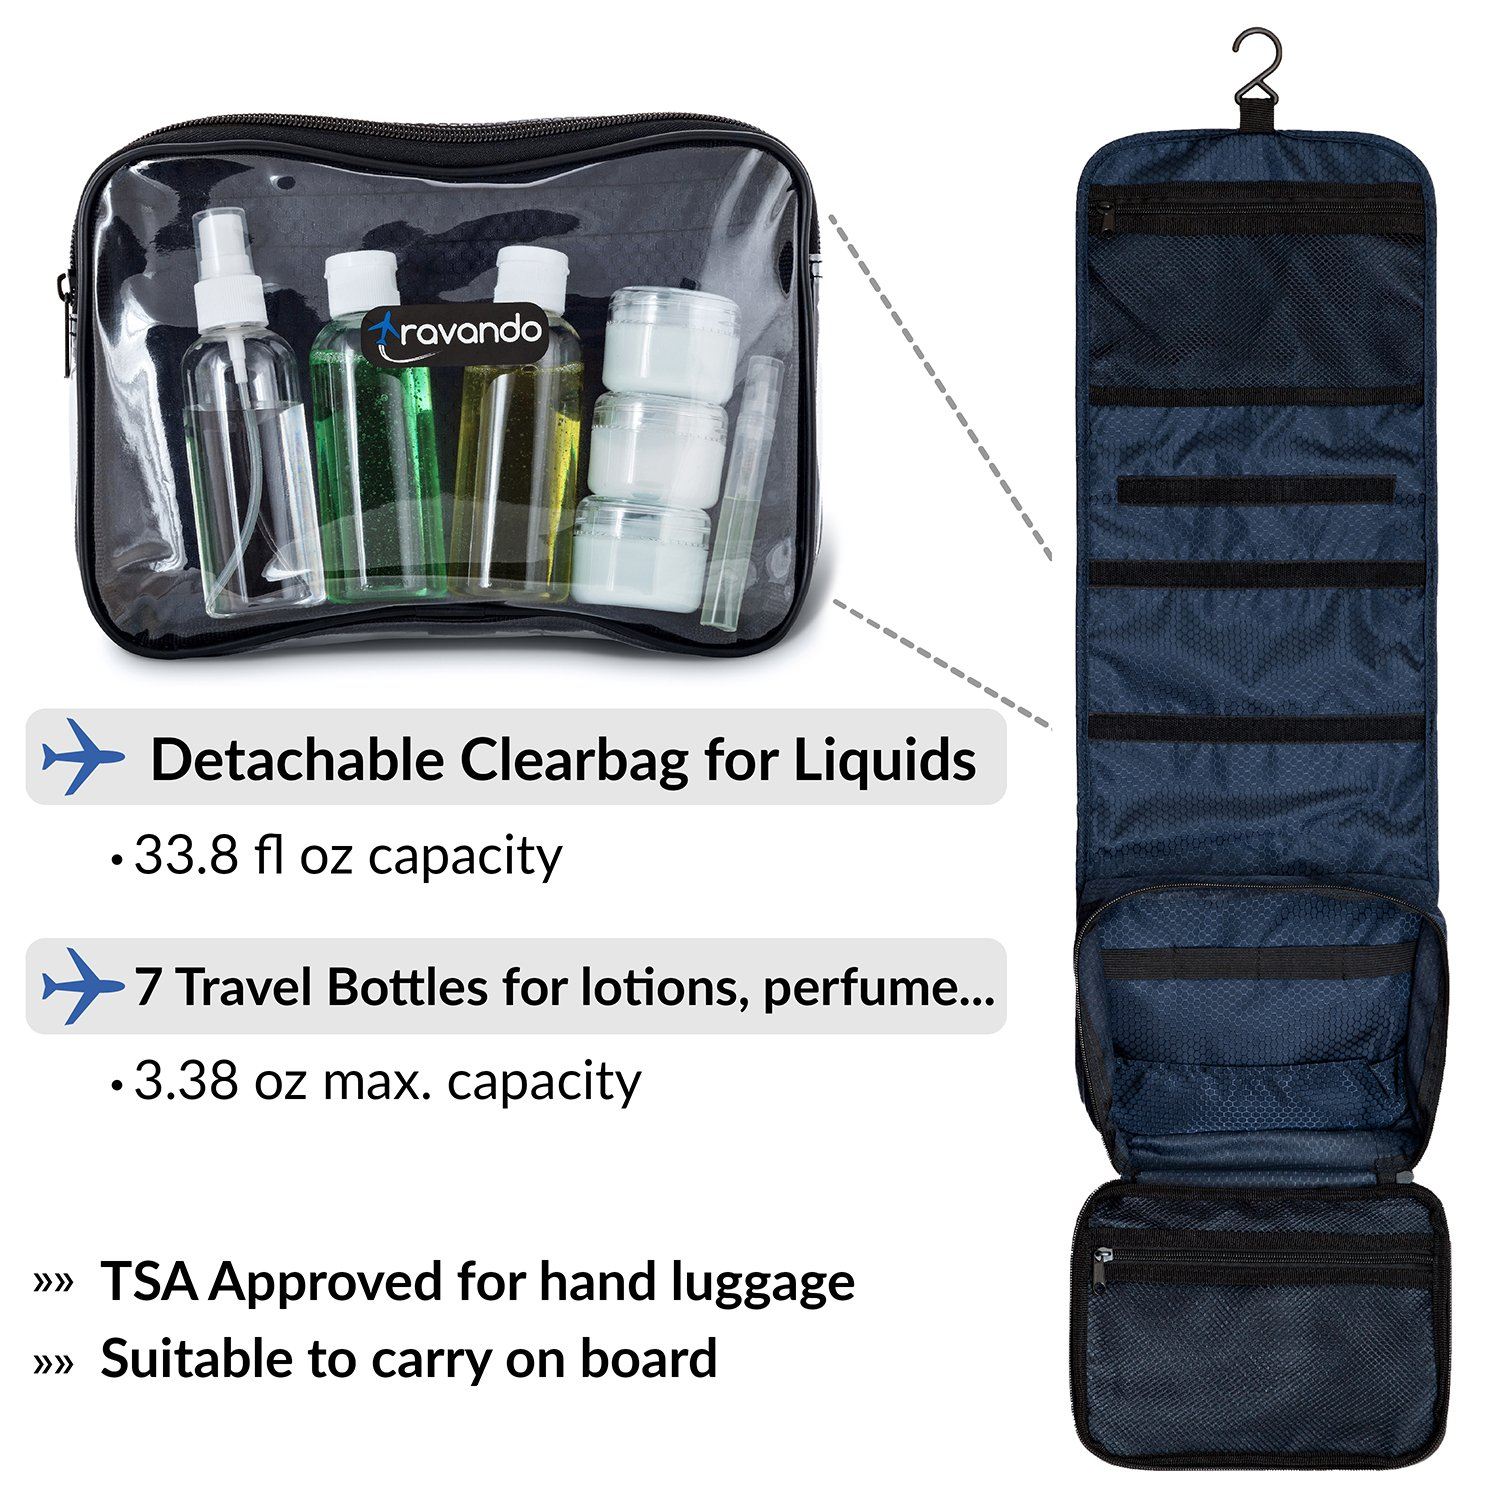 TRAVANDO Hanging Toiletry Bag ''FLEXI'' + 7 Containers for Liquids | Travel Set for Men and Women | Toiletry Kit for Cosmetics, Makeup | Toilet Organiser Suitcase Roll Wash Bag by TRAVANDO (Image #1)